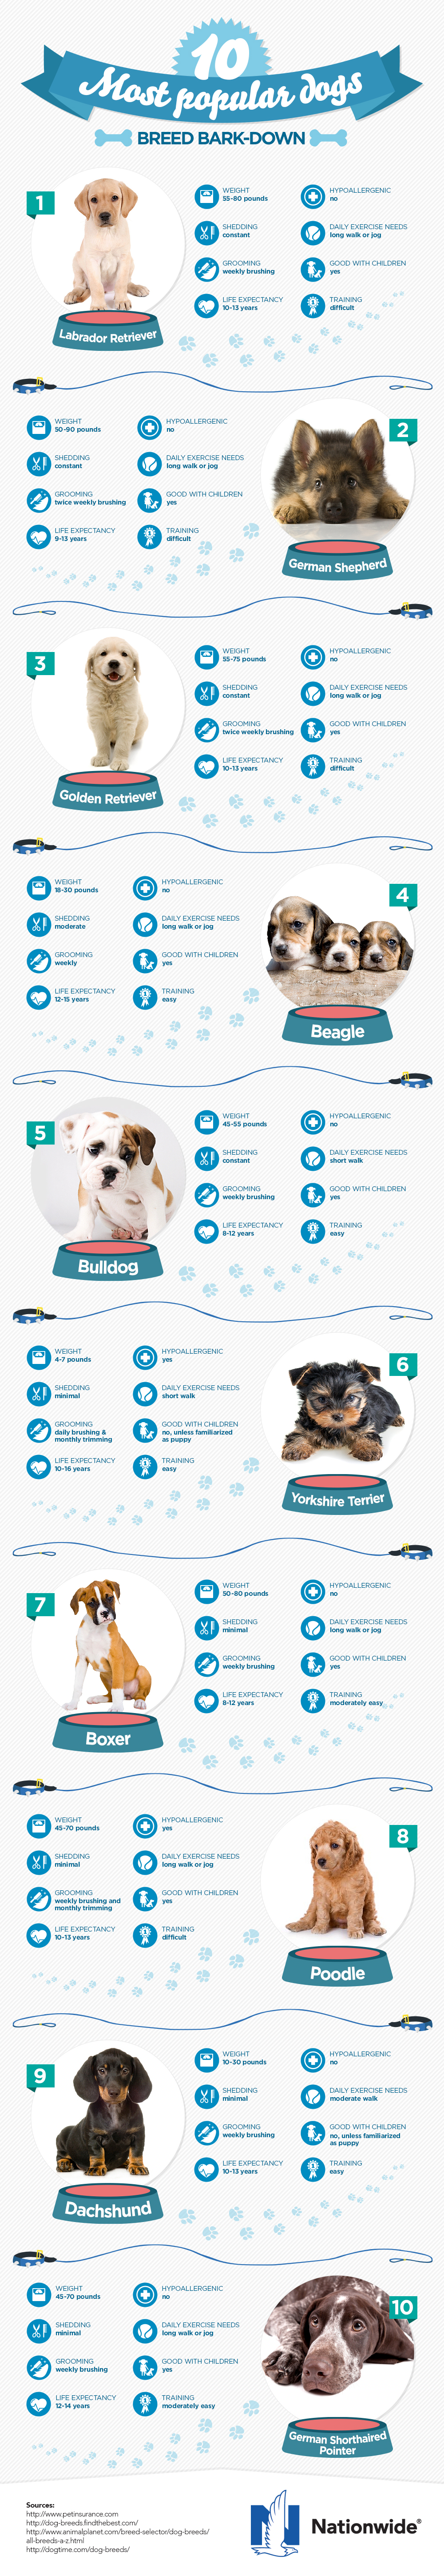 dog-breeds-final.jpg